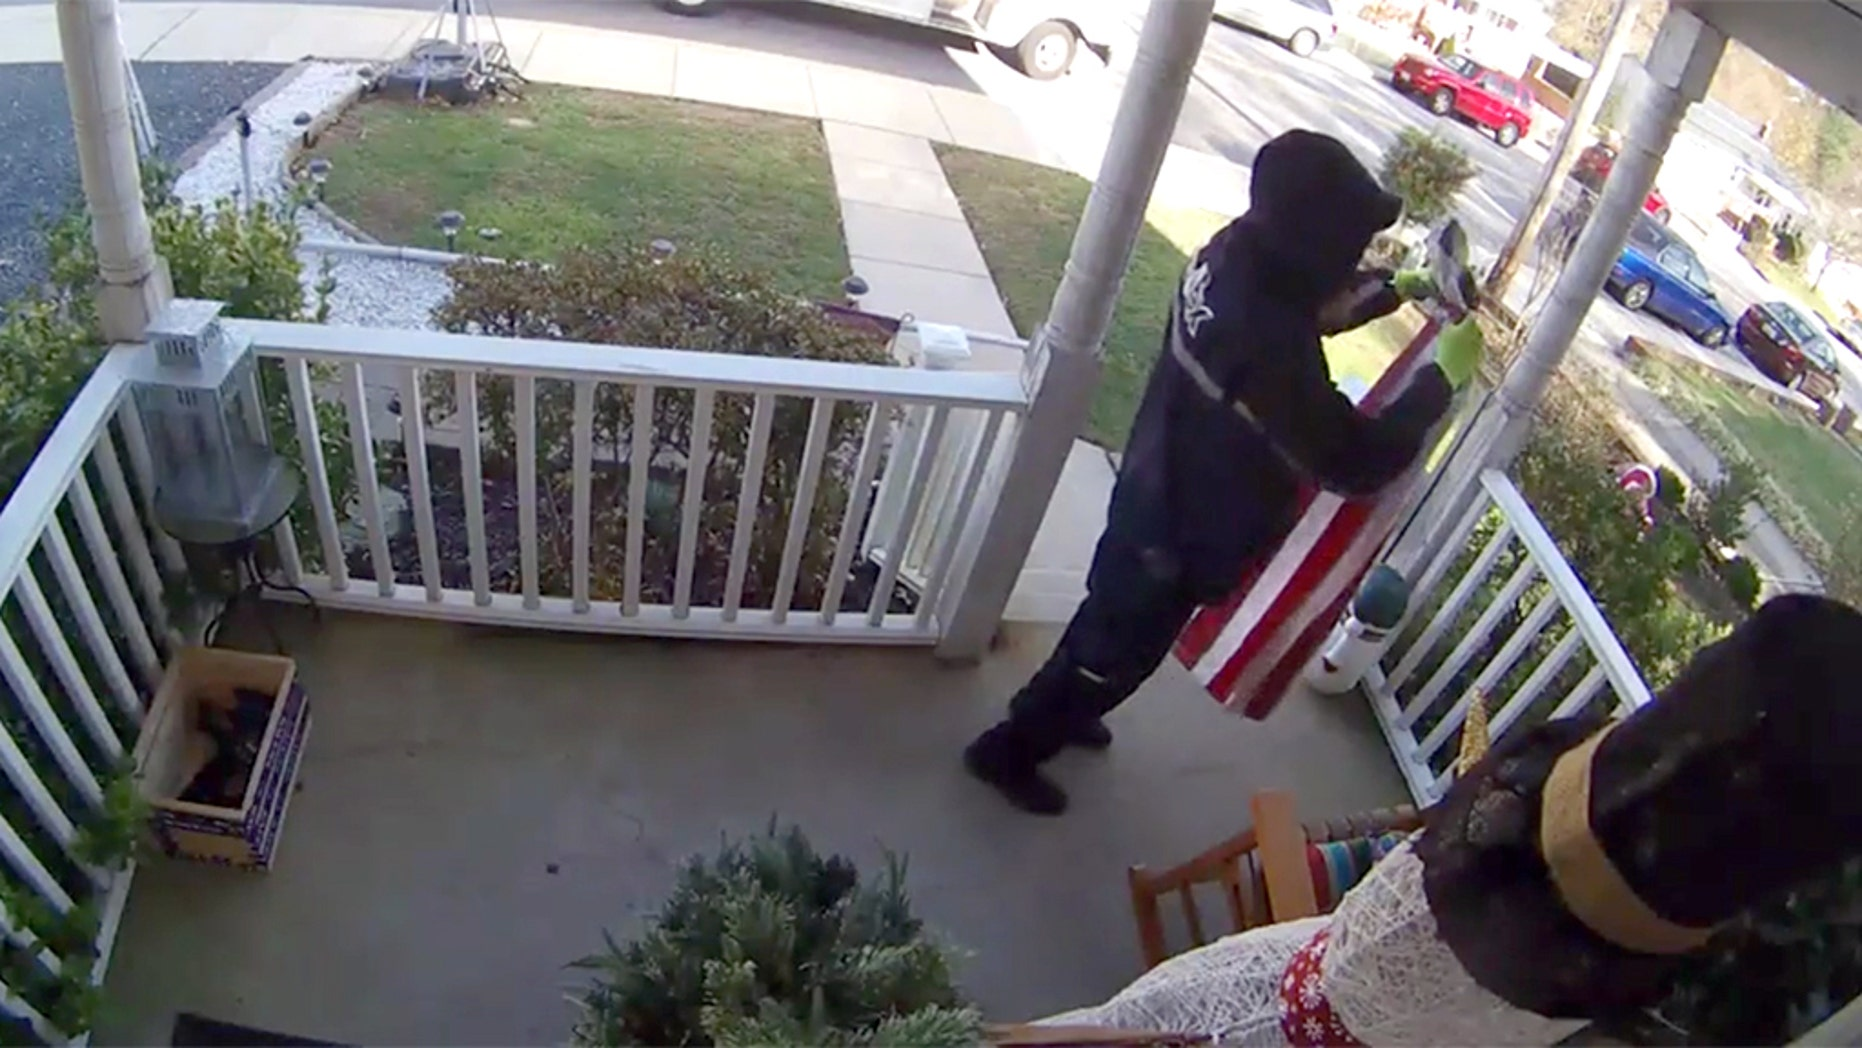 Fedex delivery man folds fallen American flag